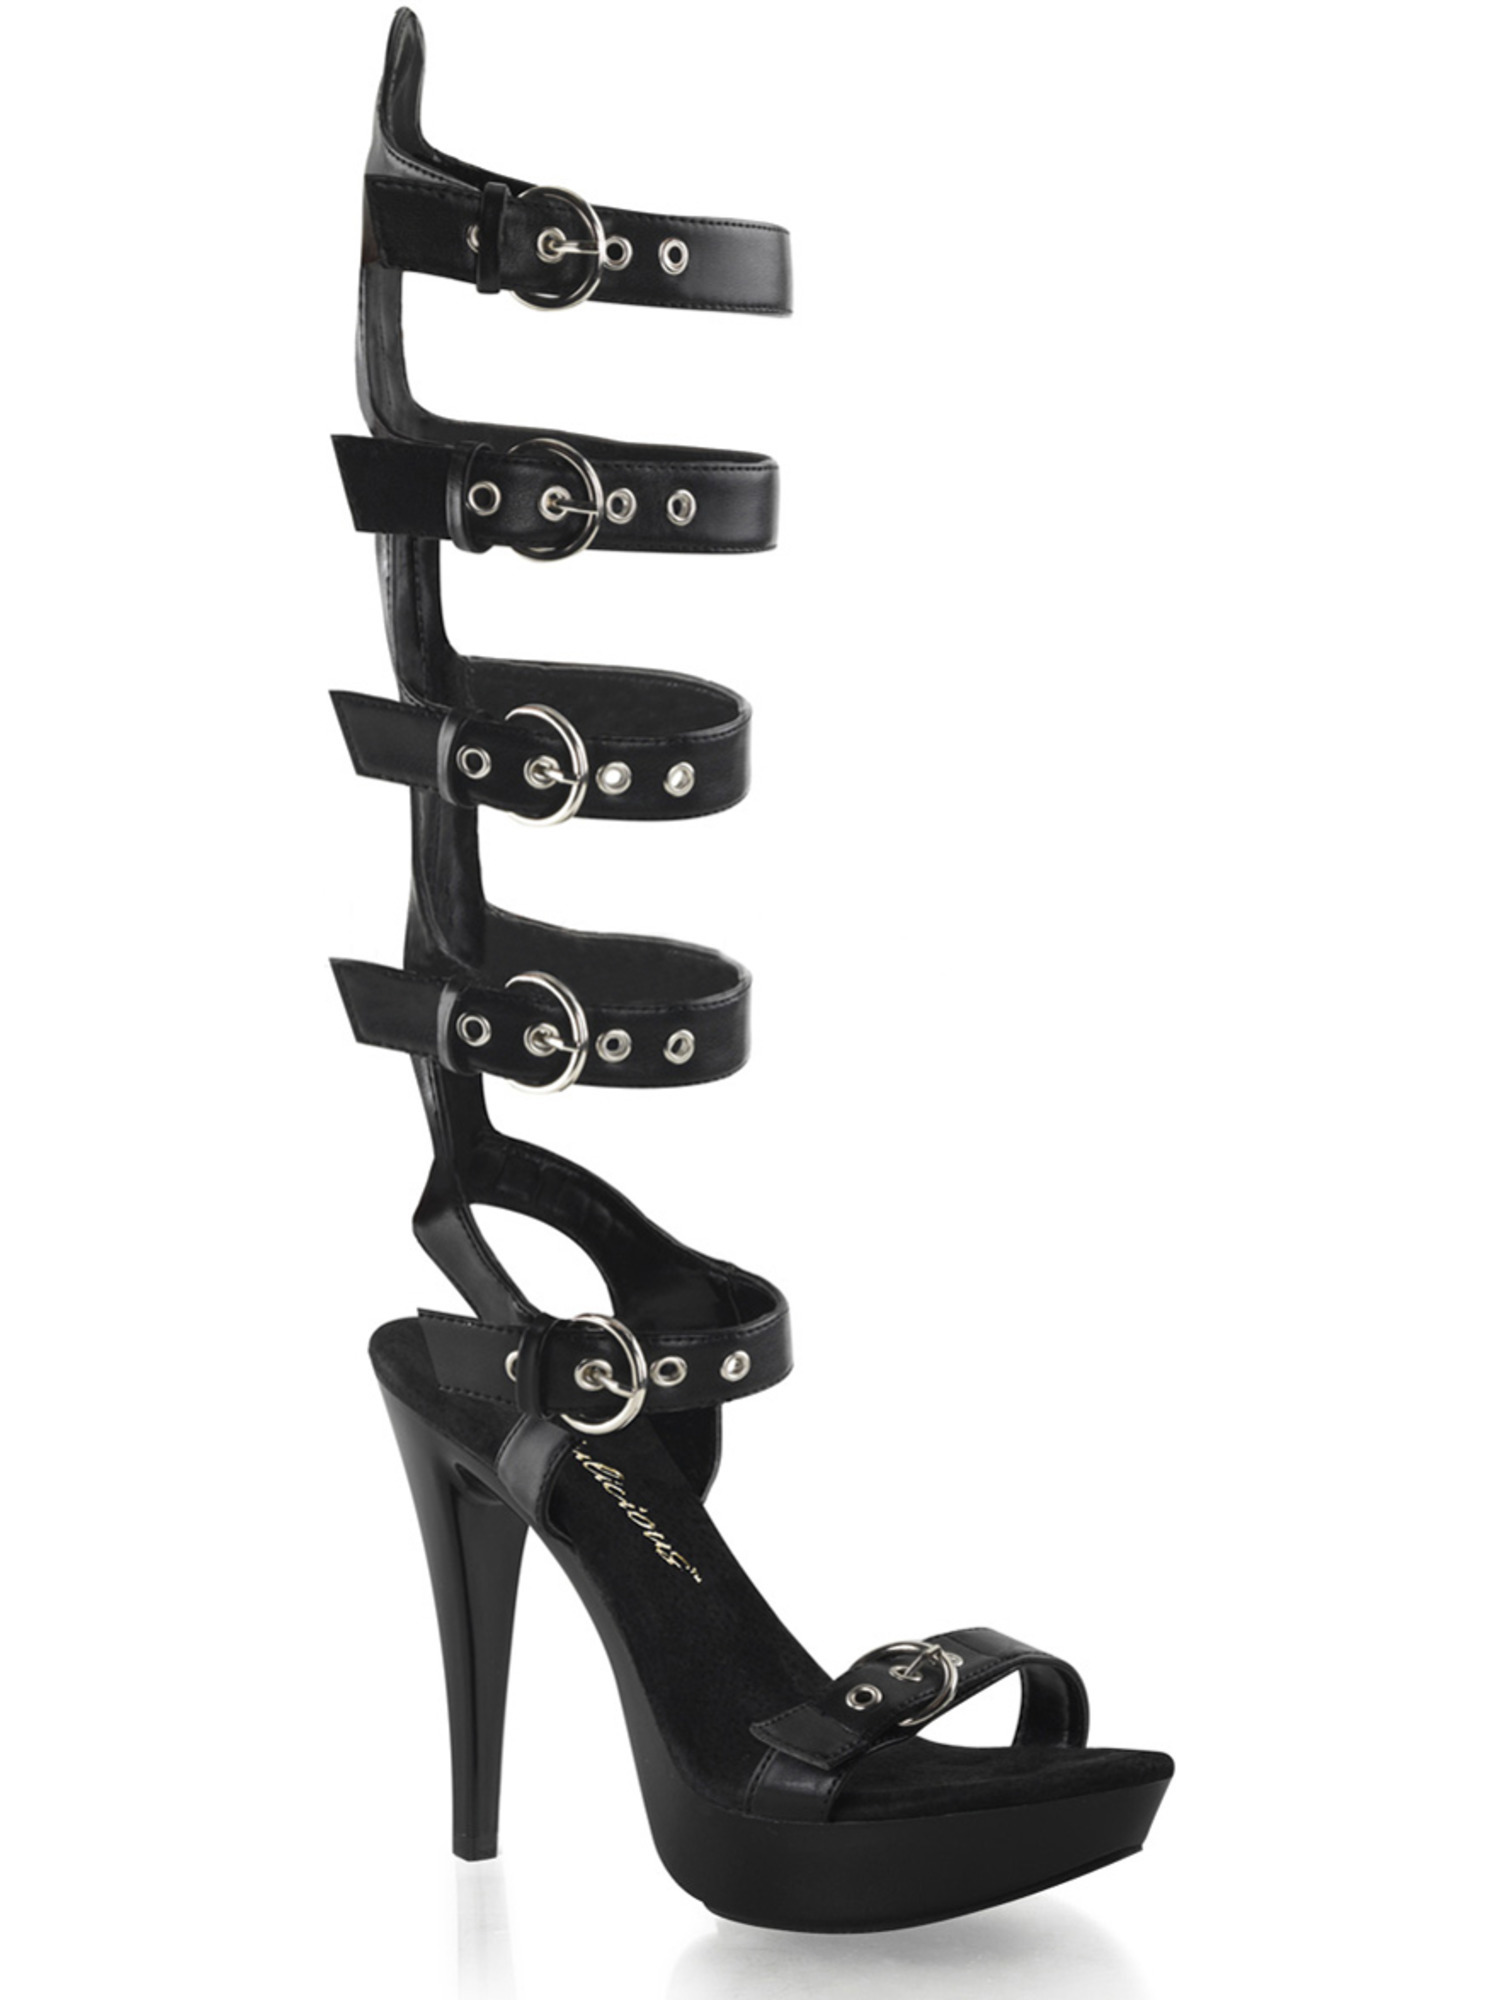 Womens Matte Black Buckled Sandals Shoes with Knee High Straps and 5'' Heels